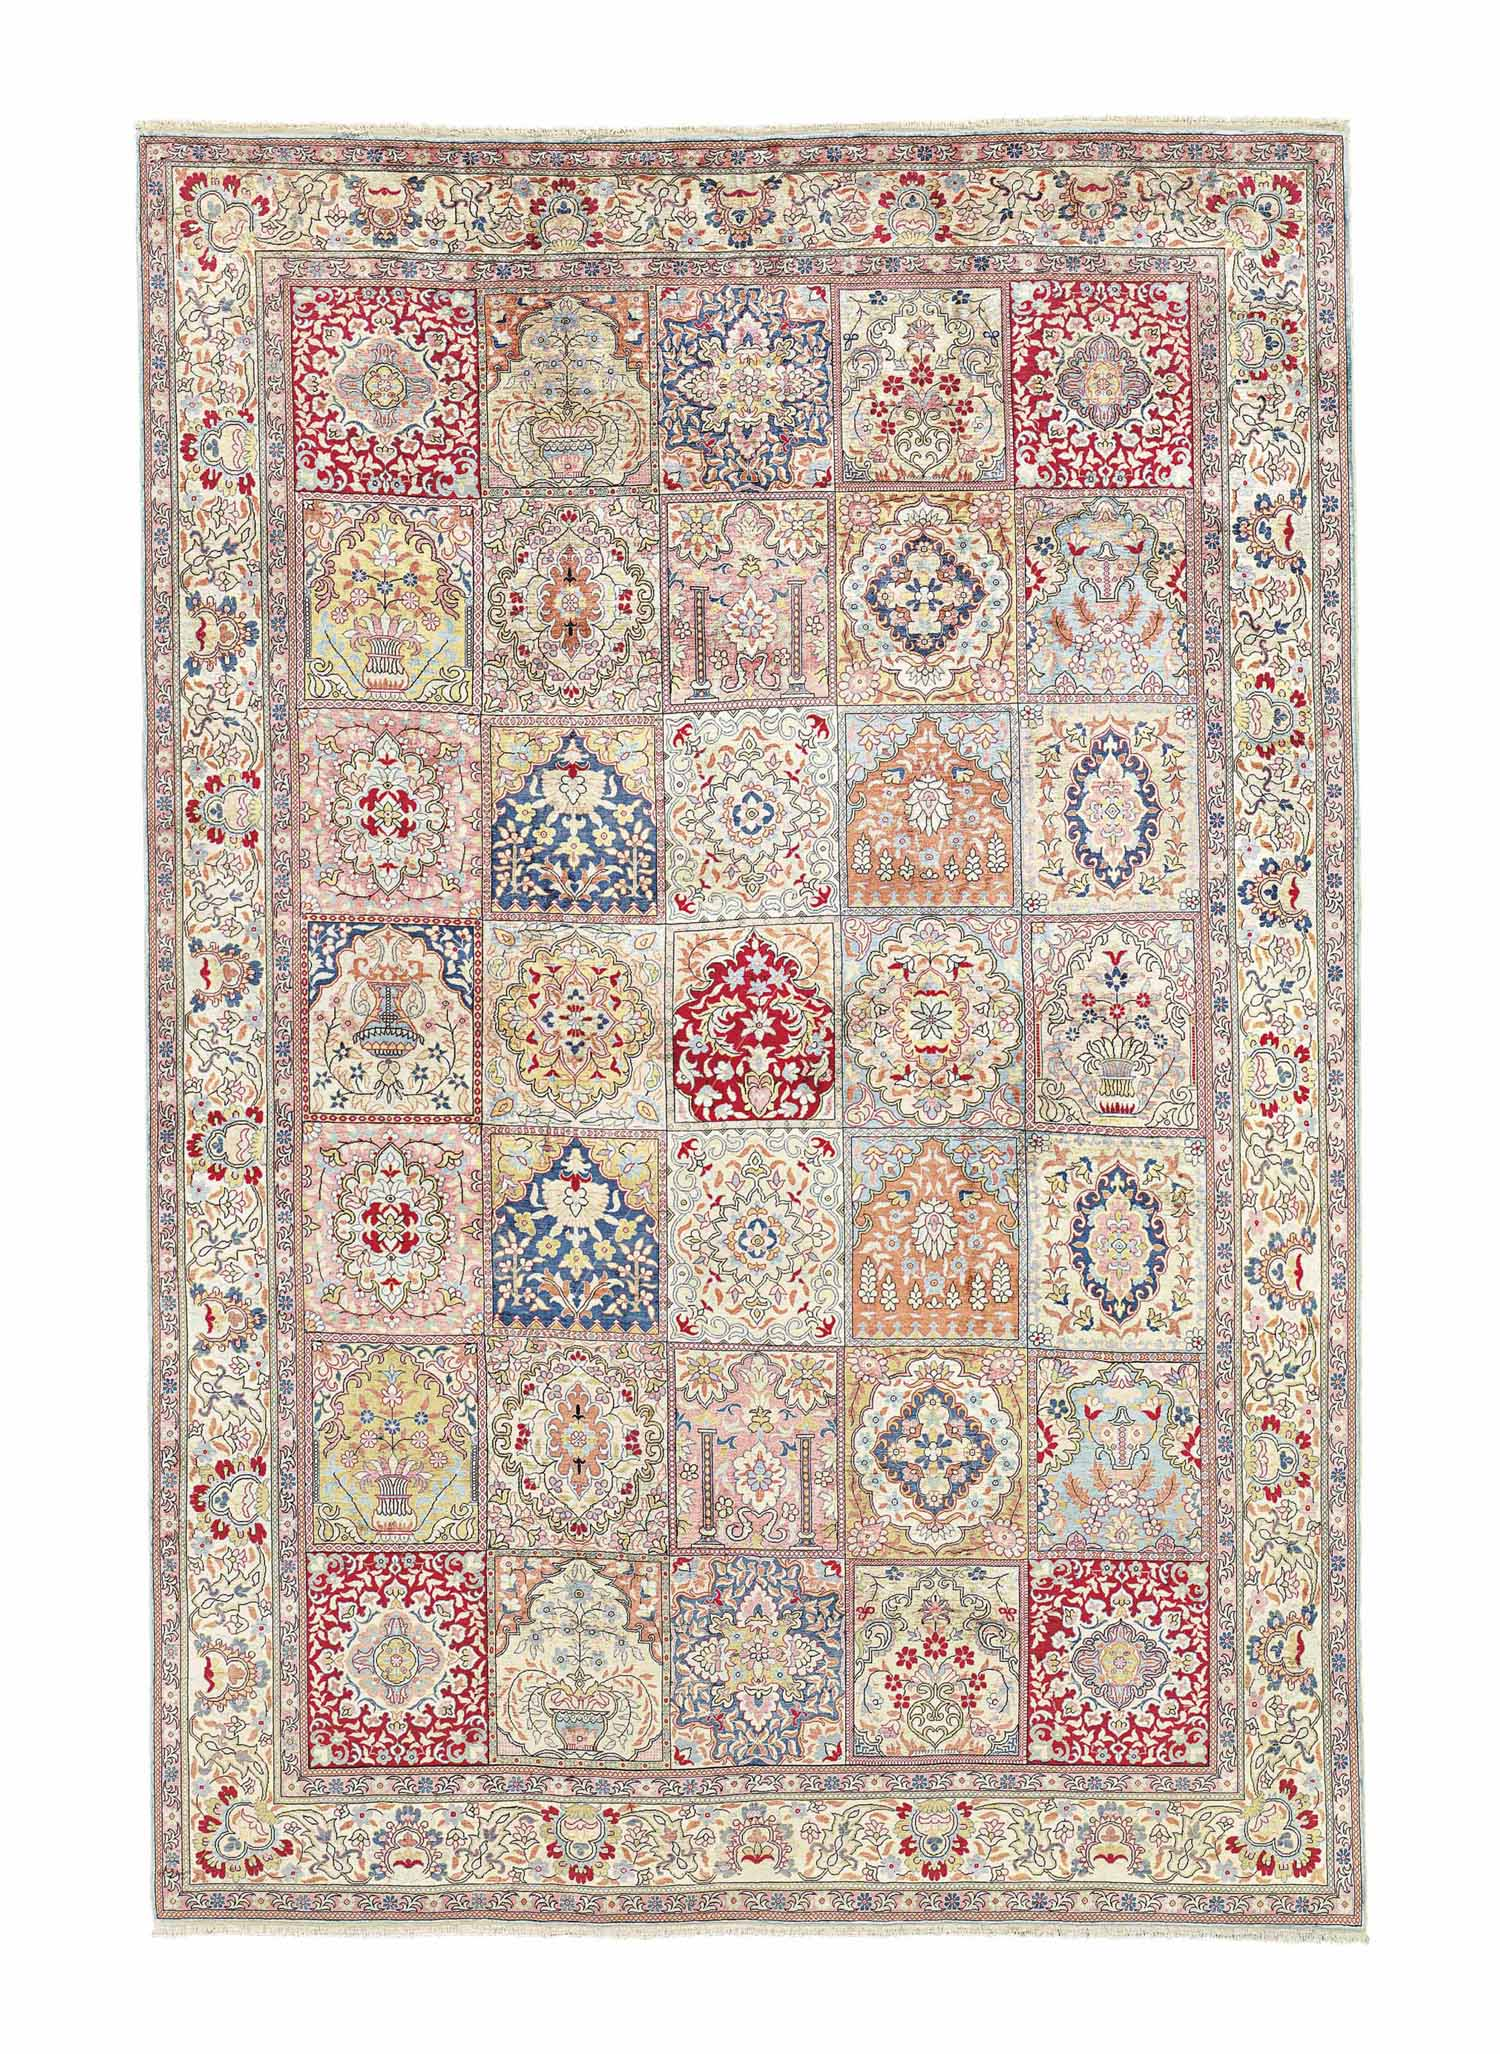 A VERY FINE SILK HEREKE CARPET